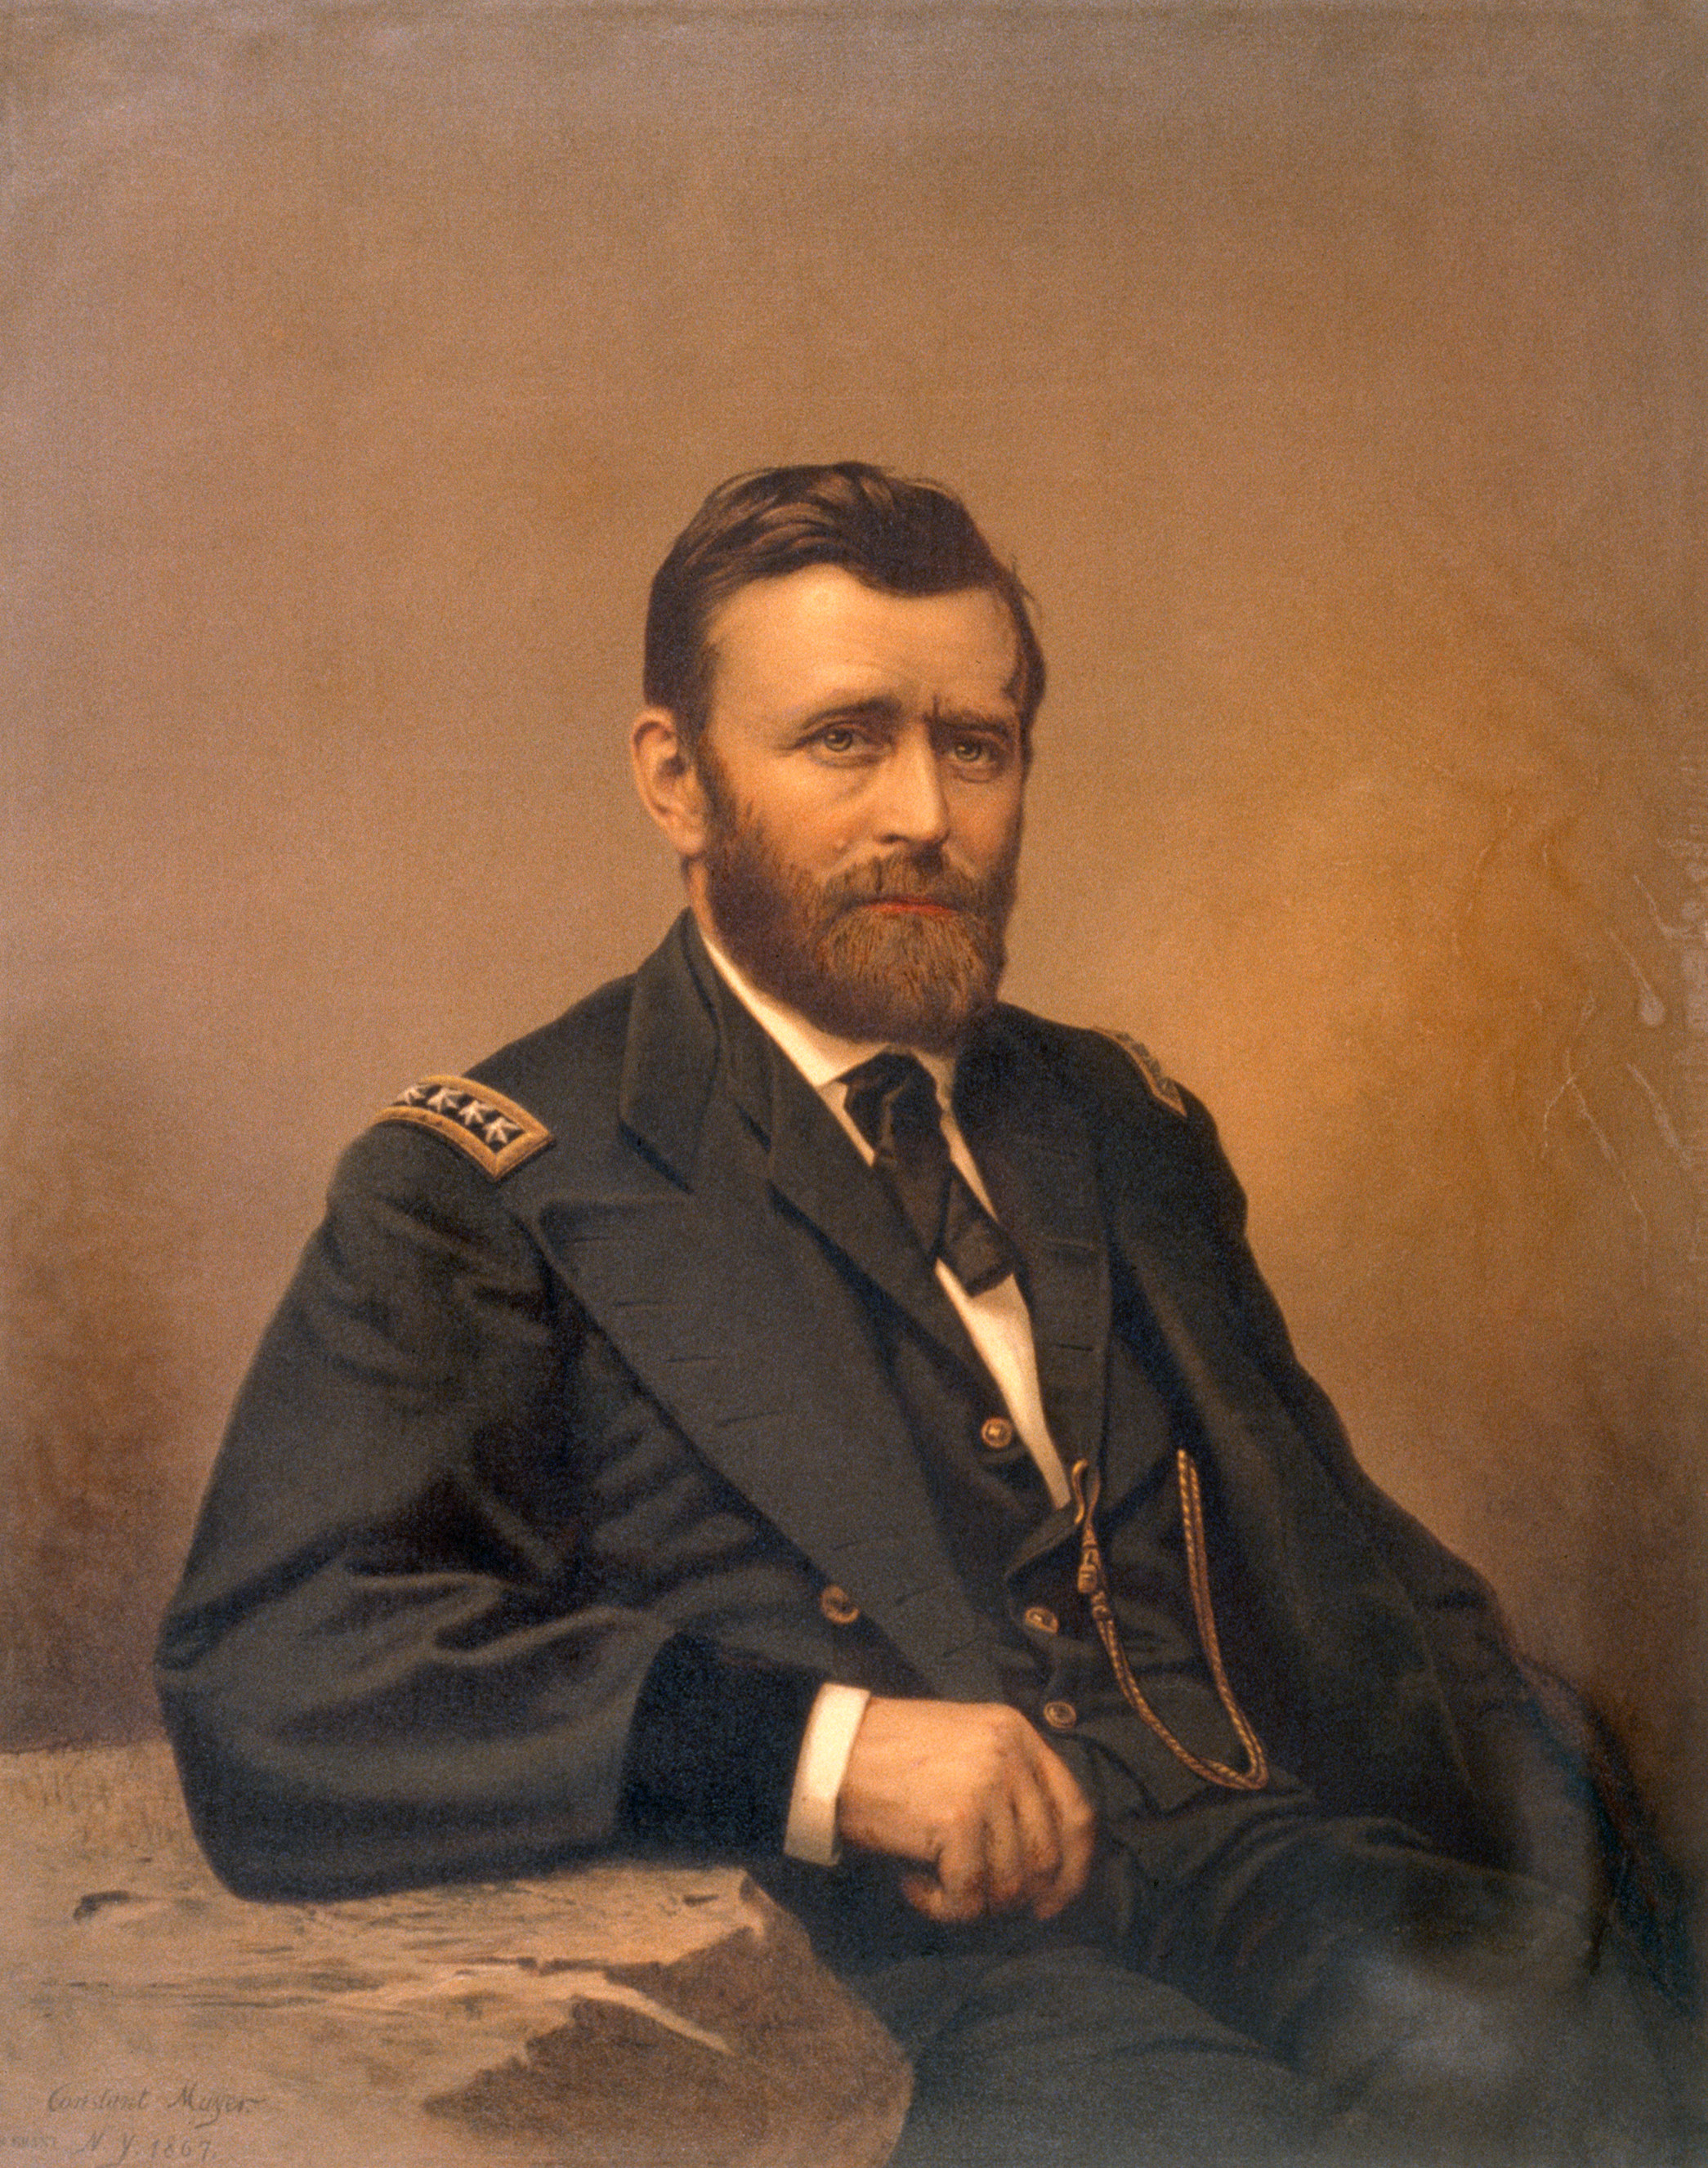 Ulysses s grant wearing military uniform union military leaders ulysses s grant the union army union military leaders the civil war publicscrutiny Images